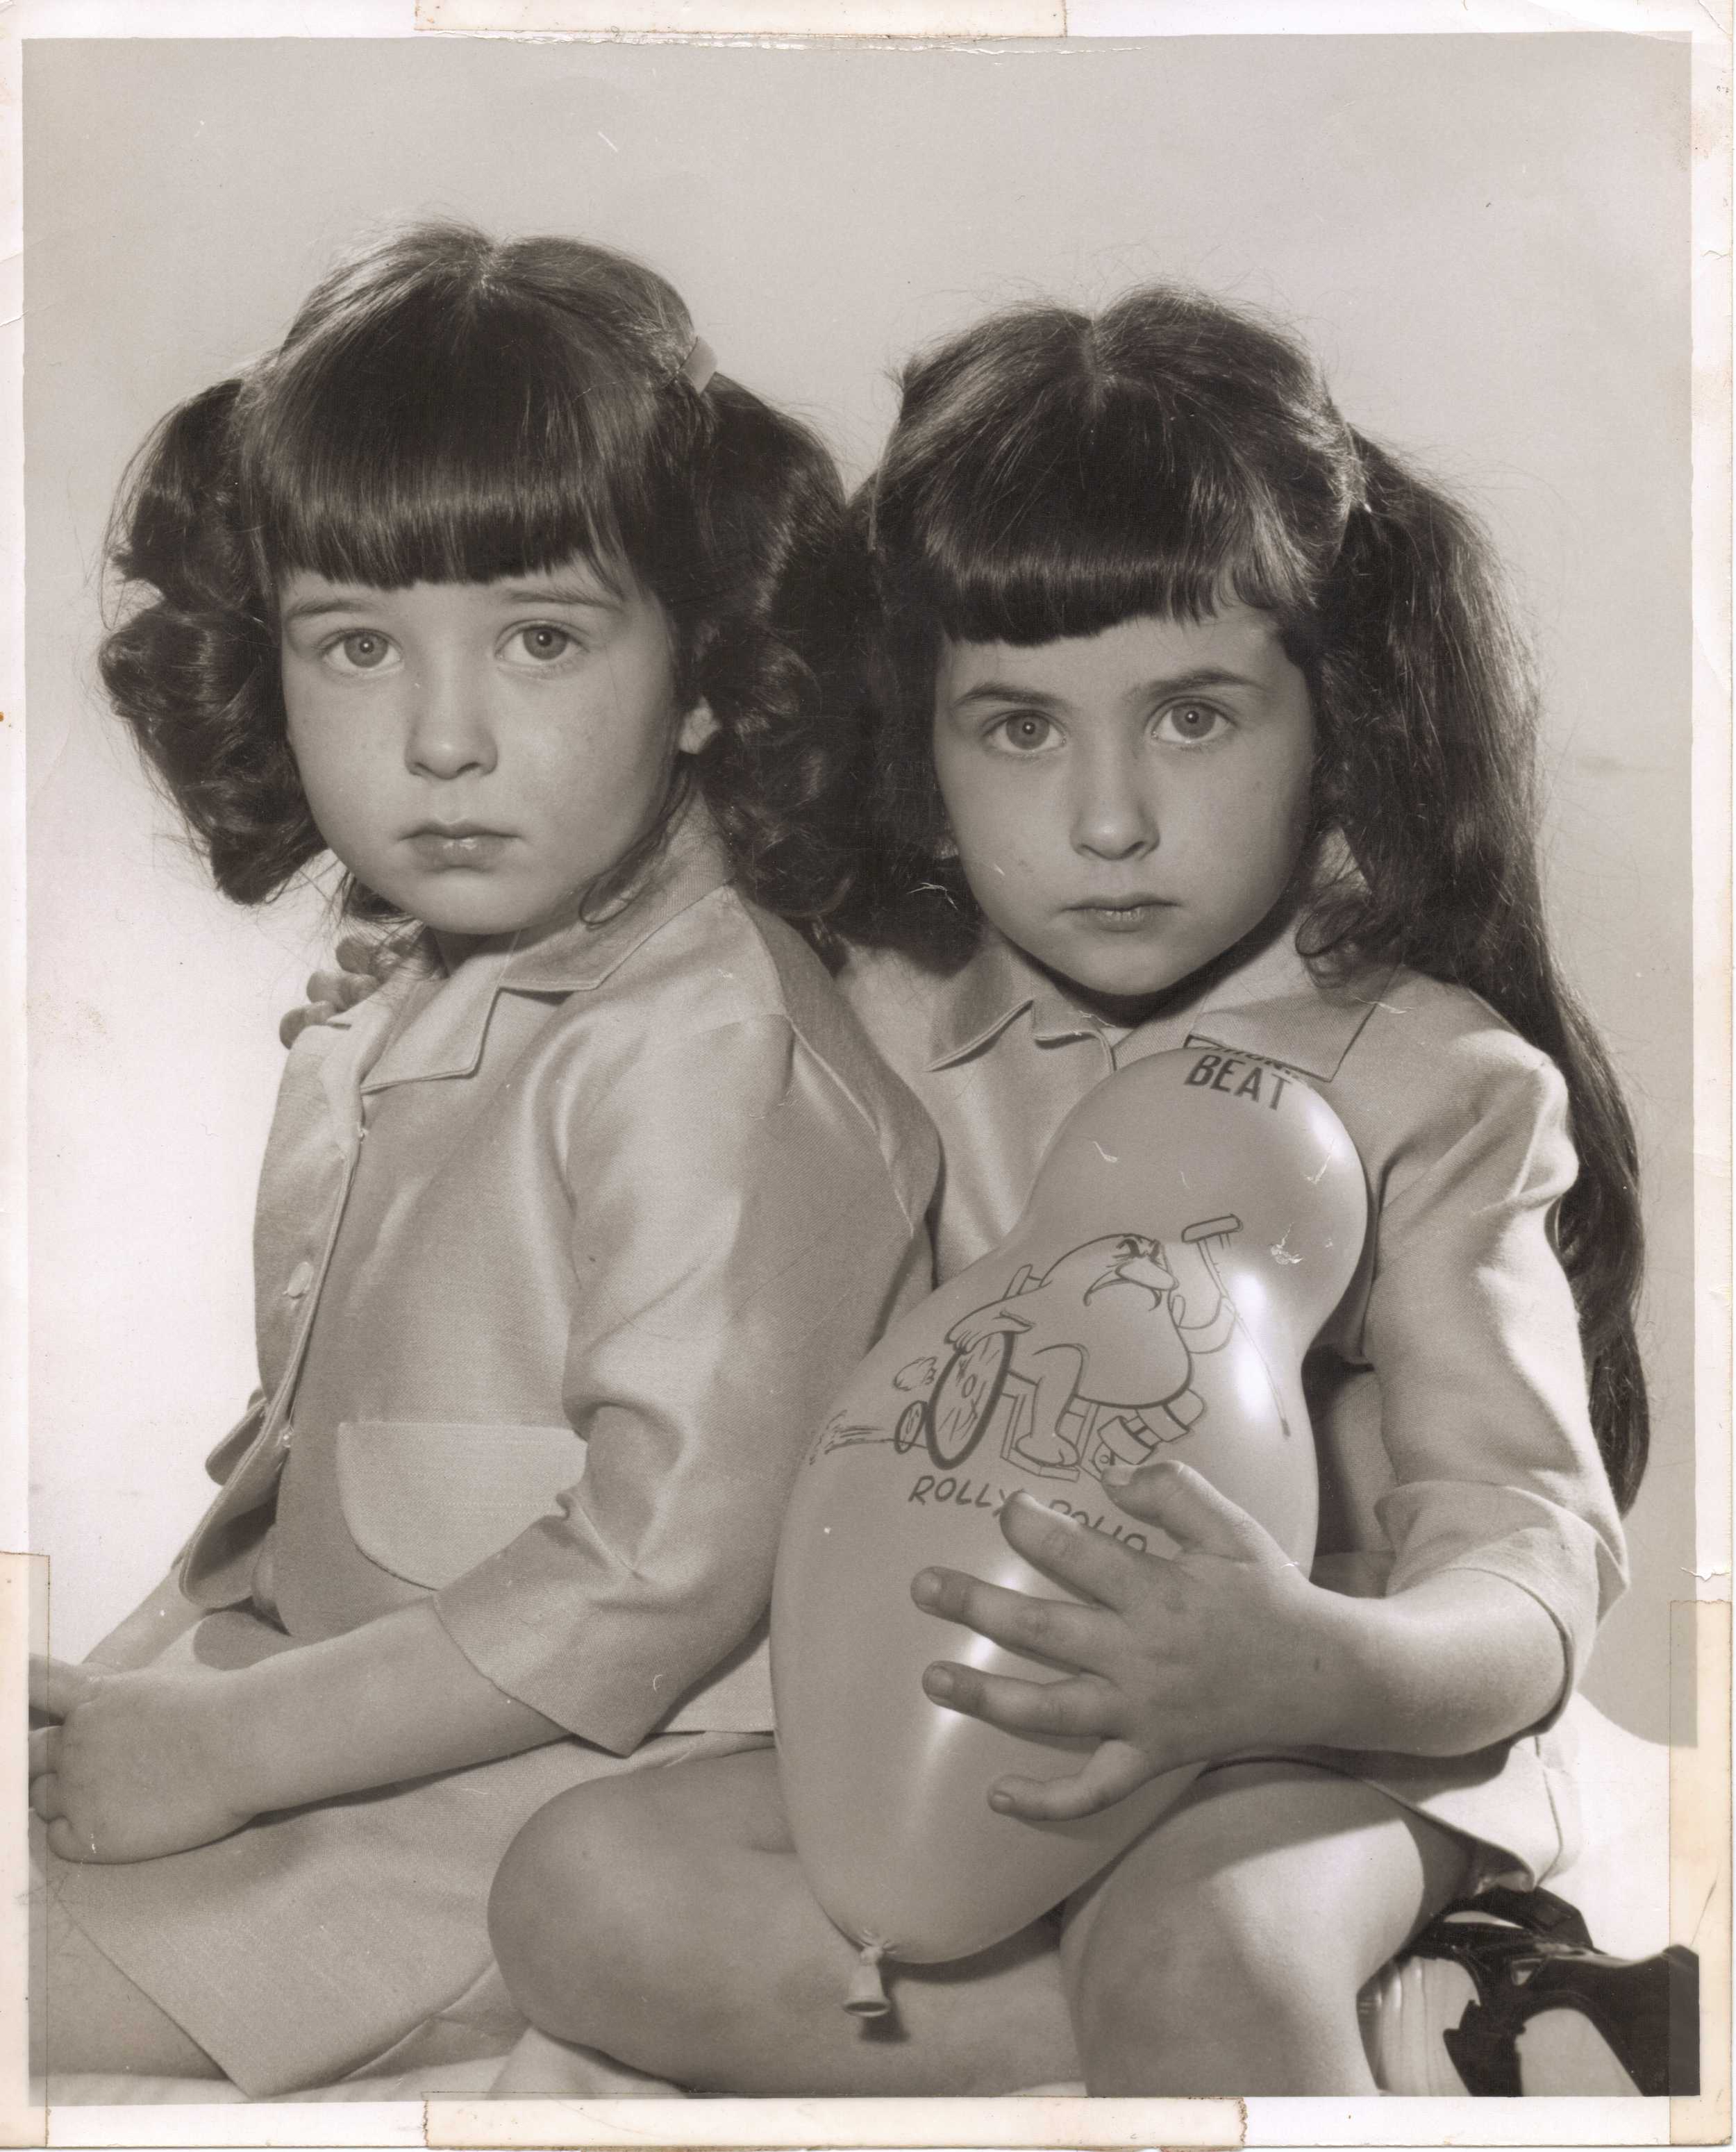 Mari and her sister's Foster Care Photo